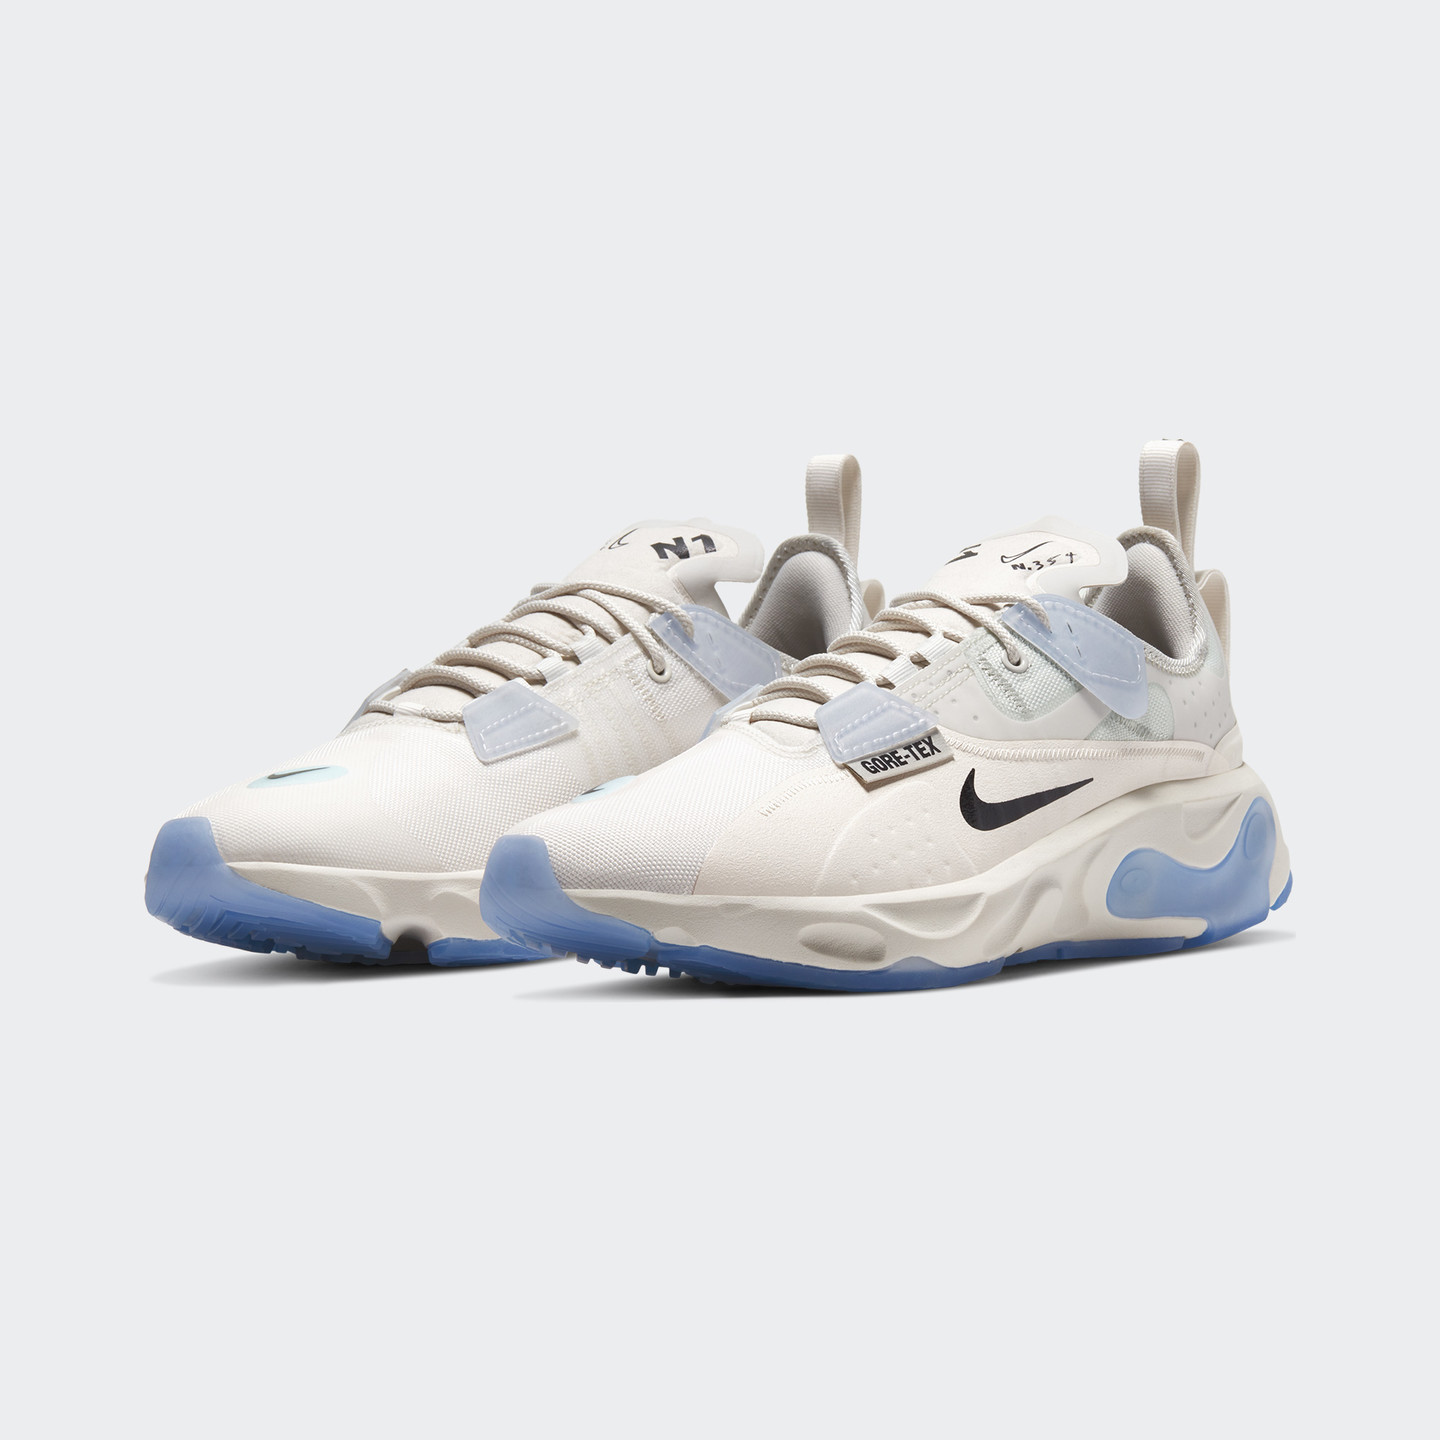 Nike React-Type GTX Phantom / Black / Light Bone BQ4737-002